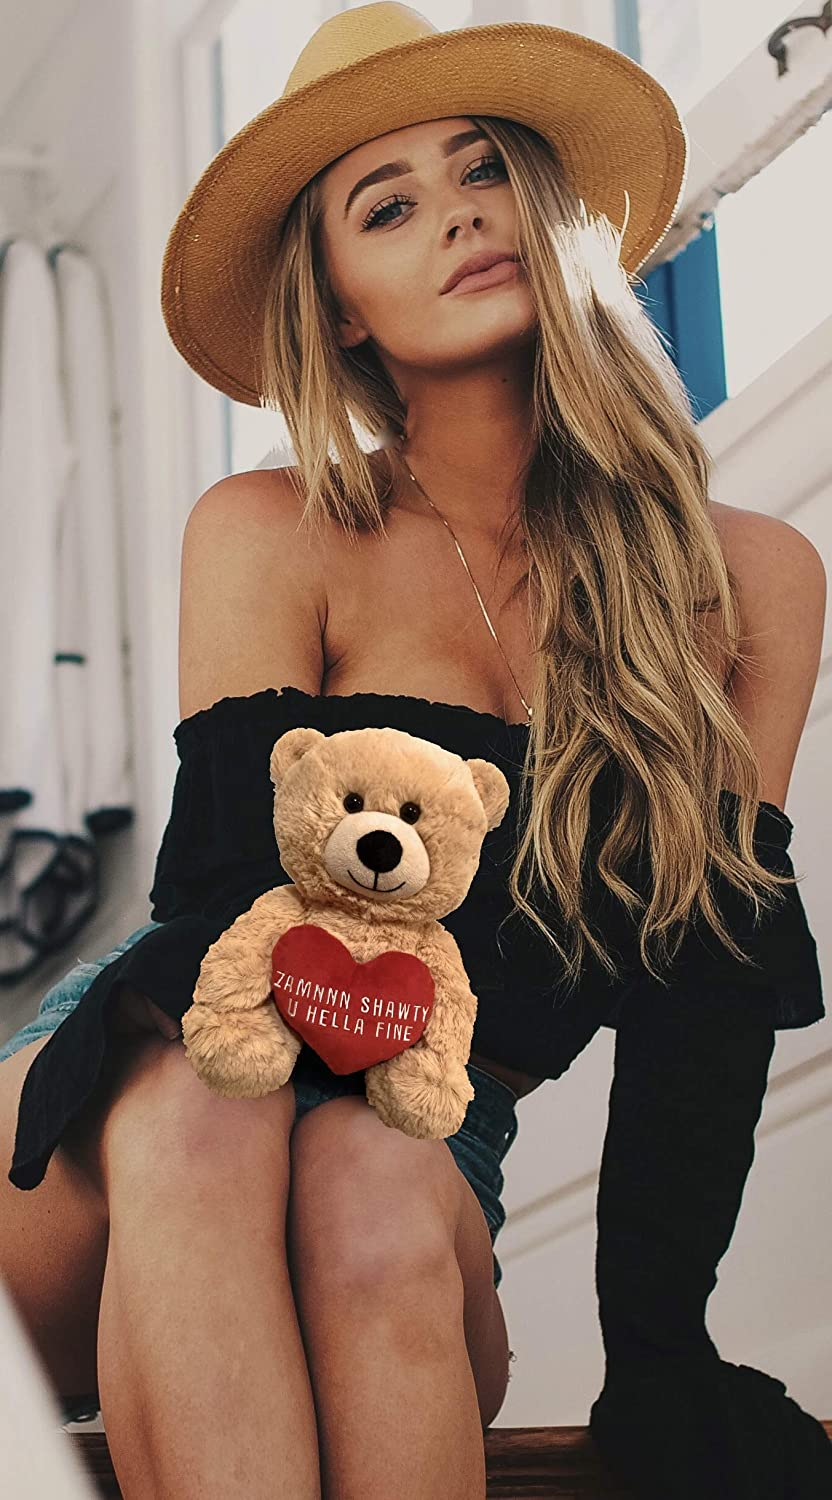 Zamnnn Shawty U Hella Fine 10 Inch Teddy Bear /& Gift Bag Valentines Day Teddy Bear Birthday Funny Cute Stuffed Animal Girlfriend Best Friend: Anniversary Boyfriend Beige Valentines Bear